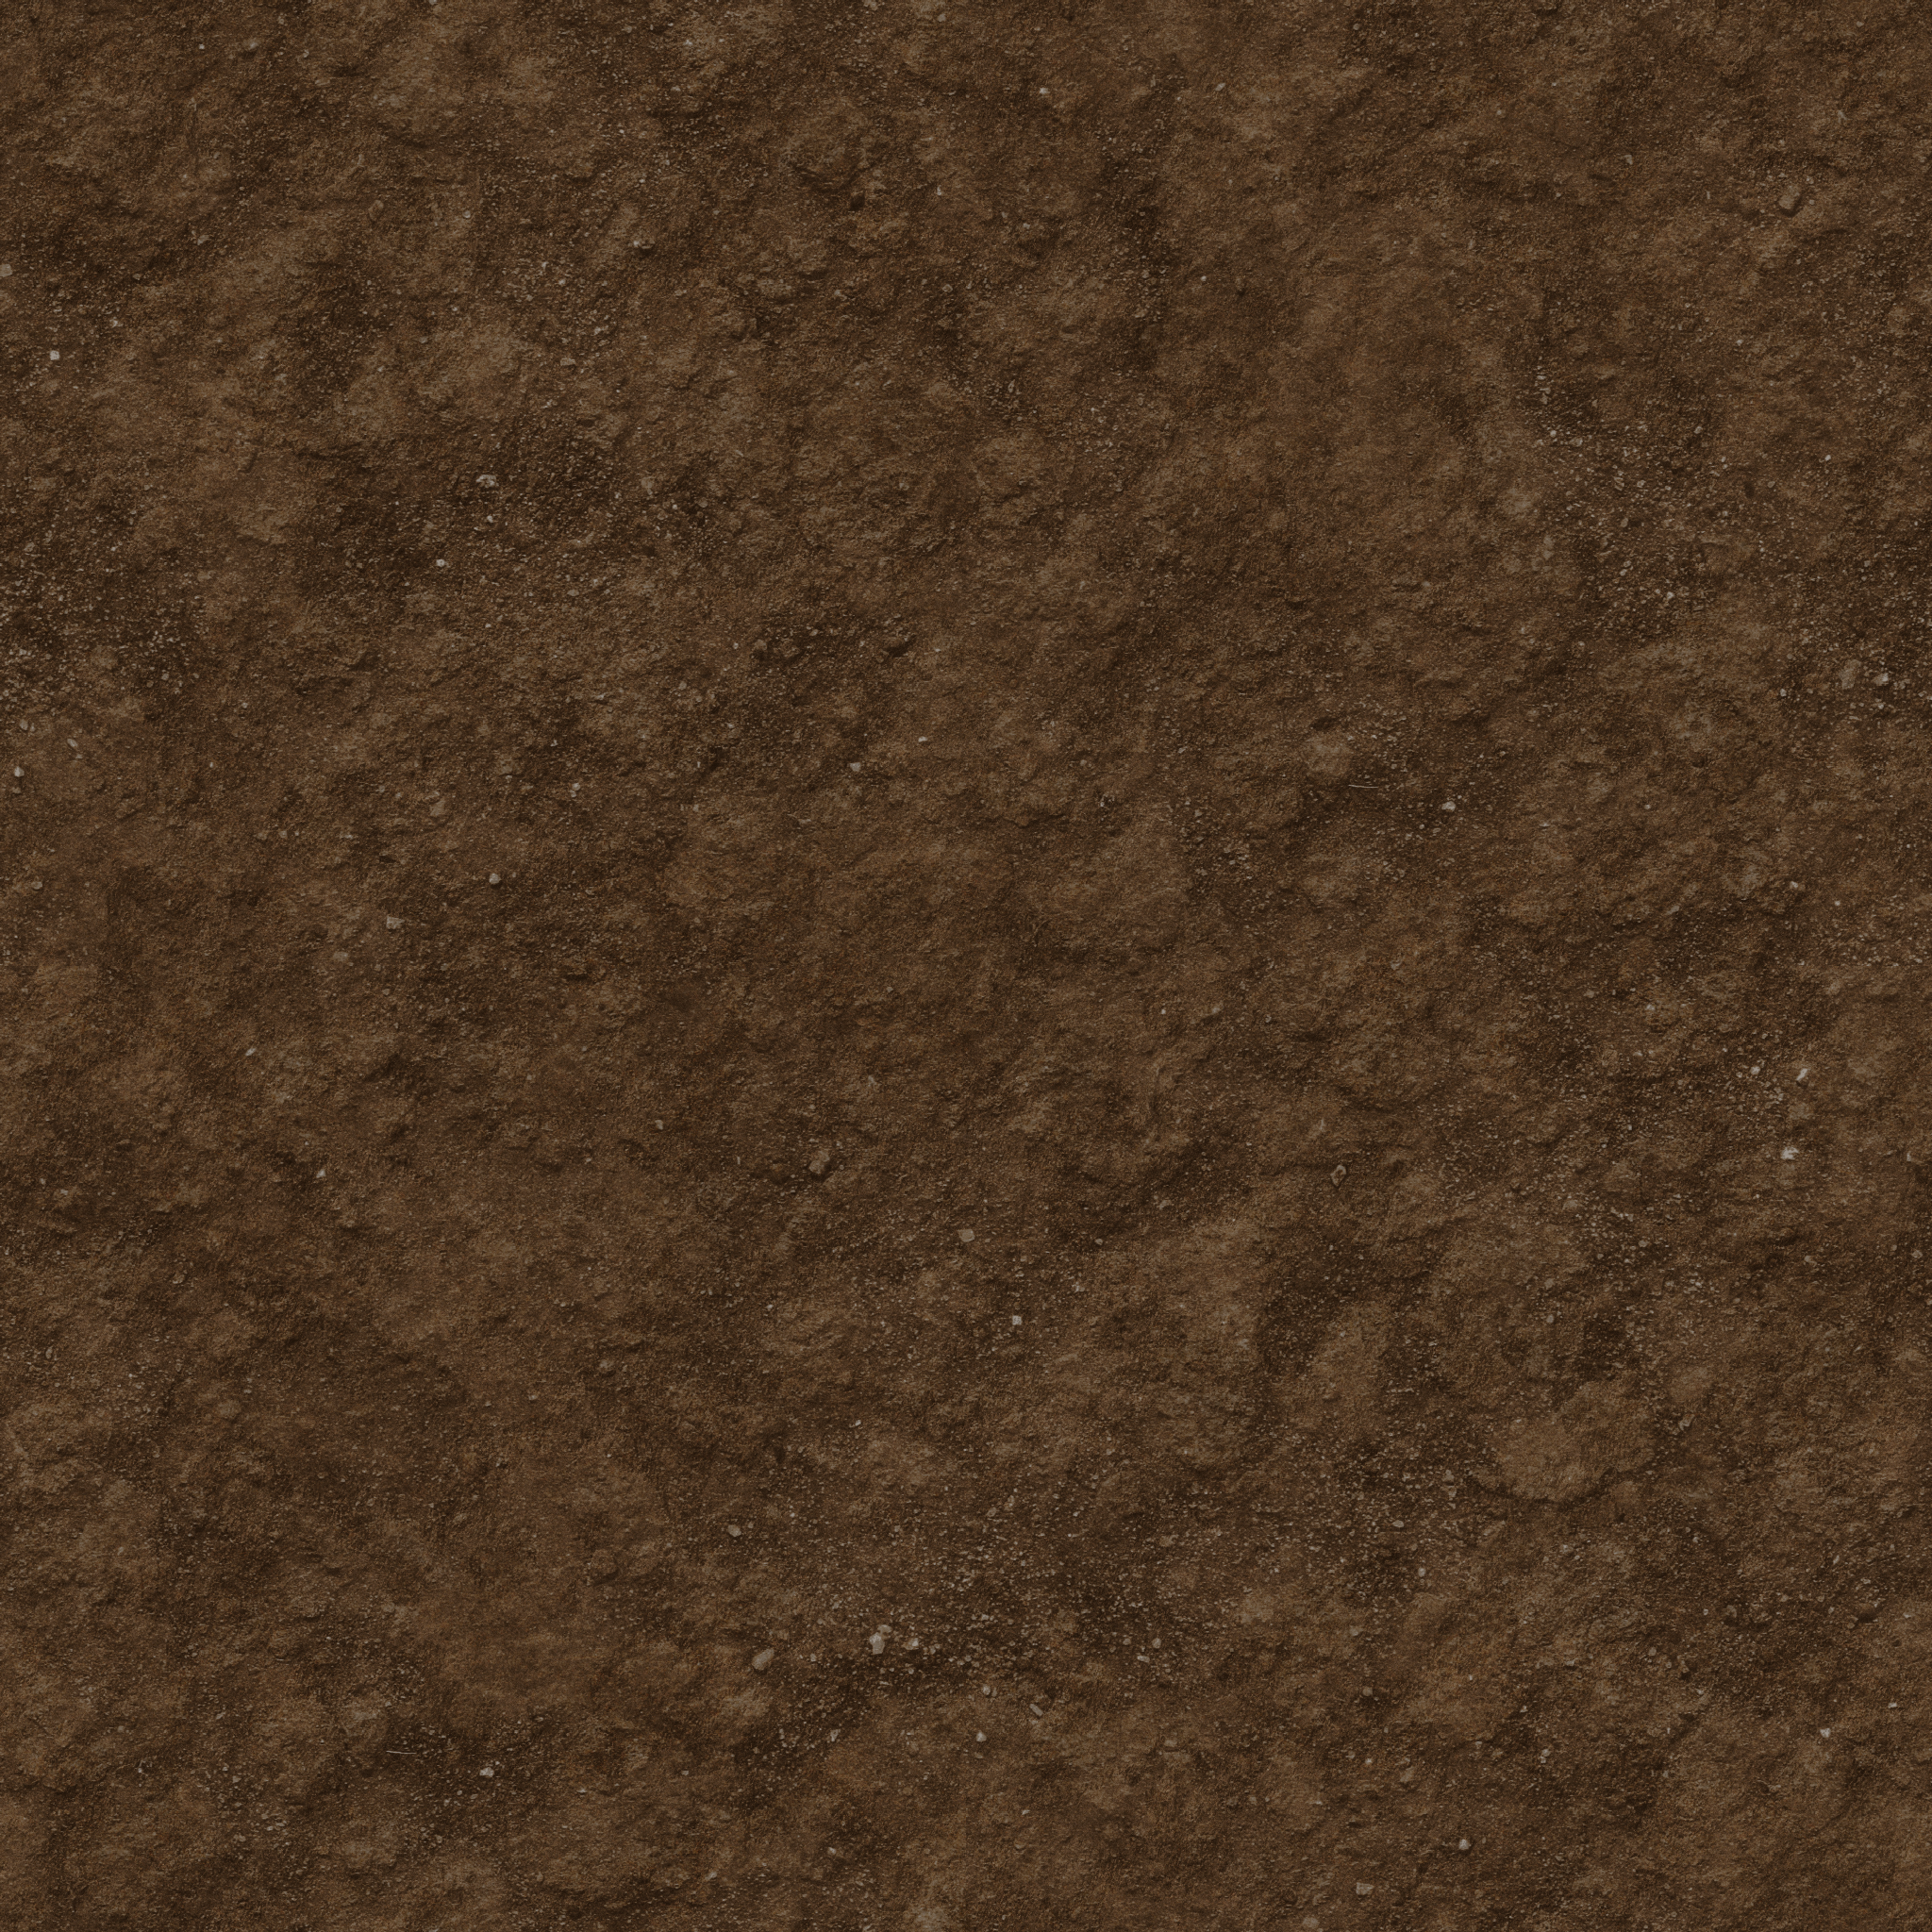 Dirt Ground Texture Tileable 2048x2048 By Fabooguy On